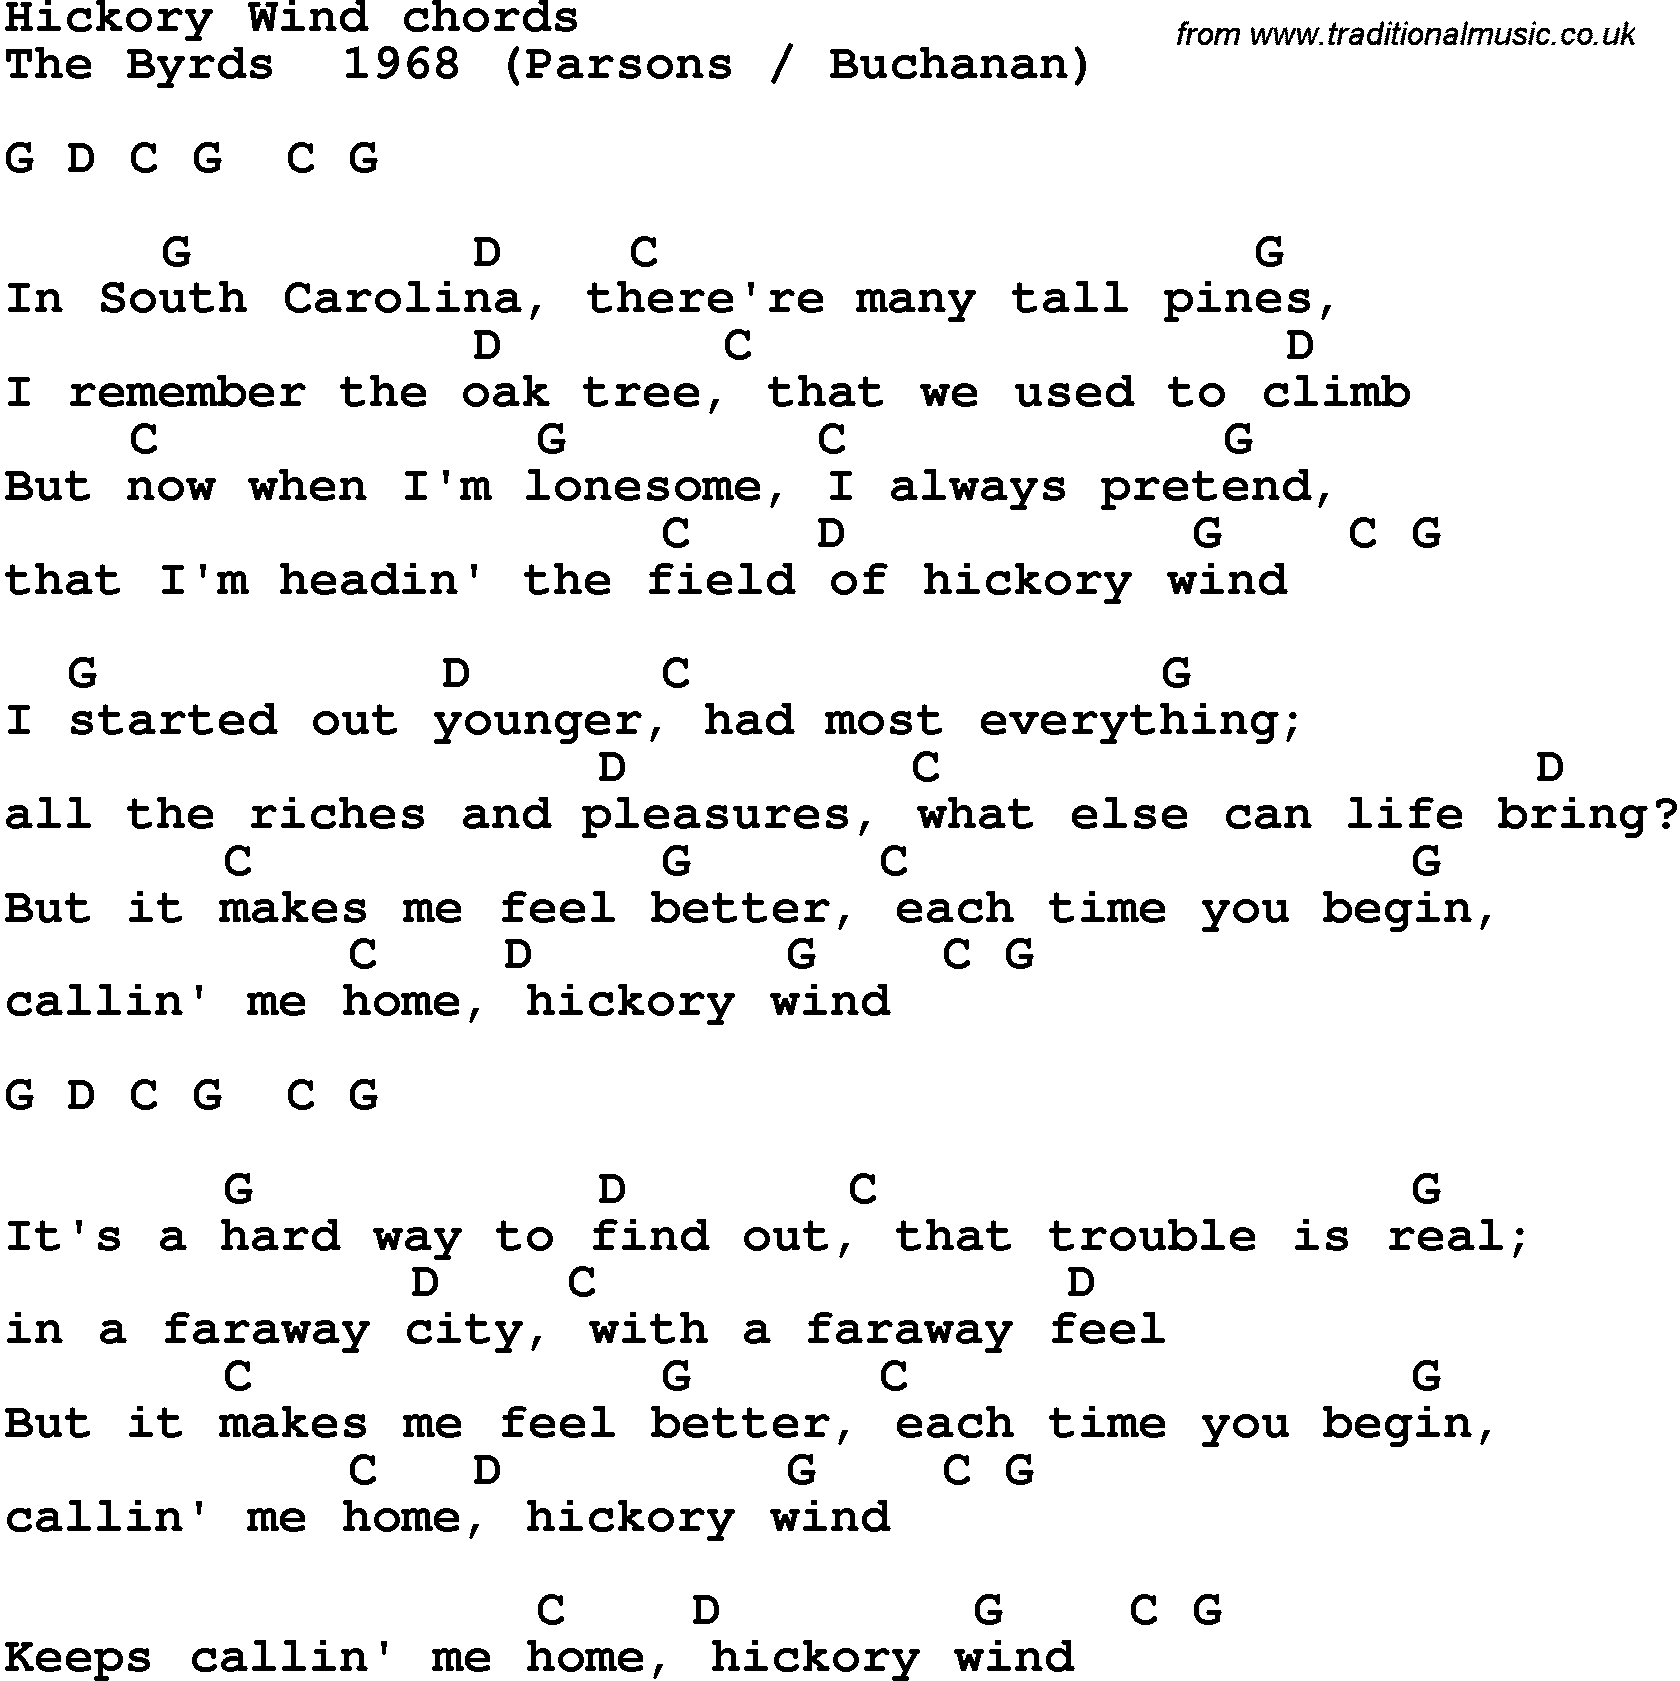 Song lyrics with guitar chords for Hickory Wind